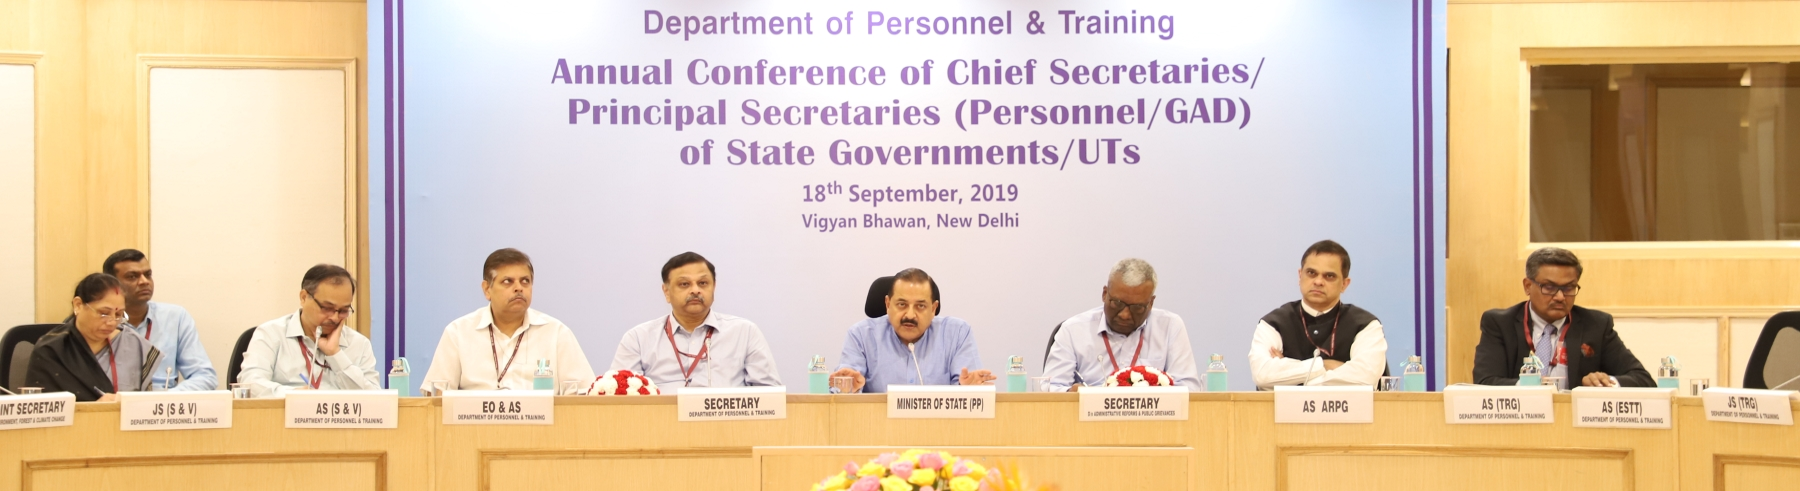 Annual Conference of Chief Secretaries, Principal Secretaries of State Governments UTs under chairmanship of Honble MoS PP